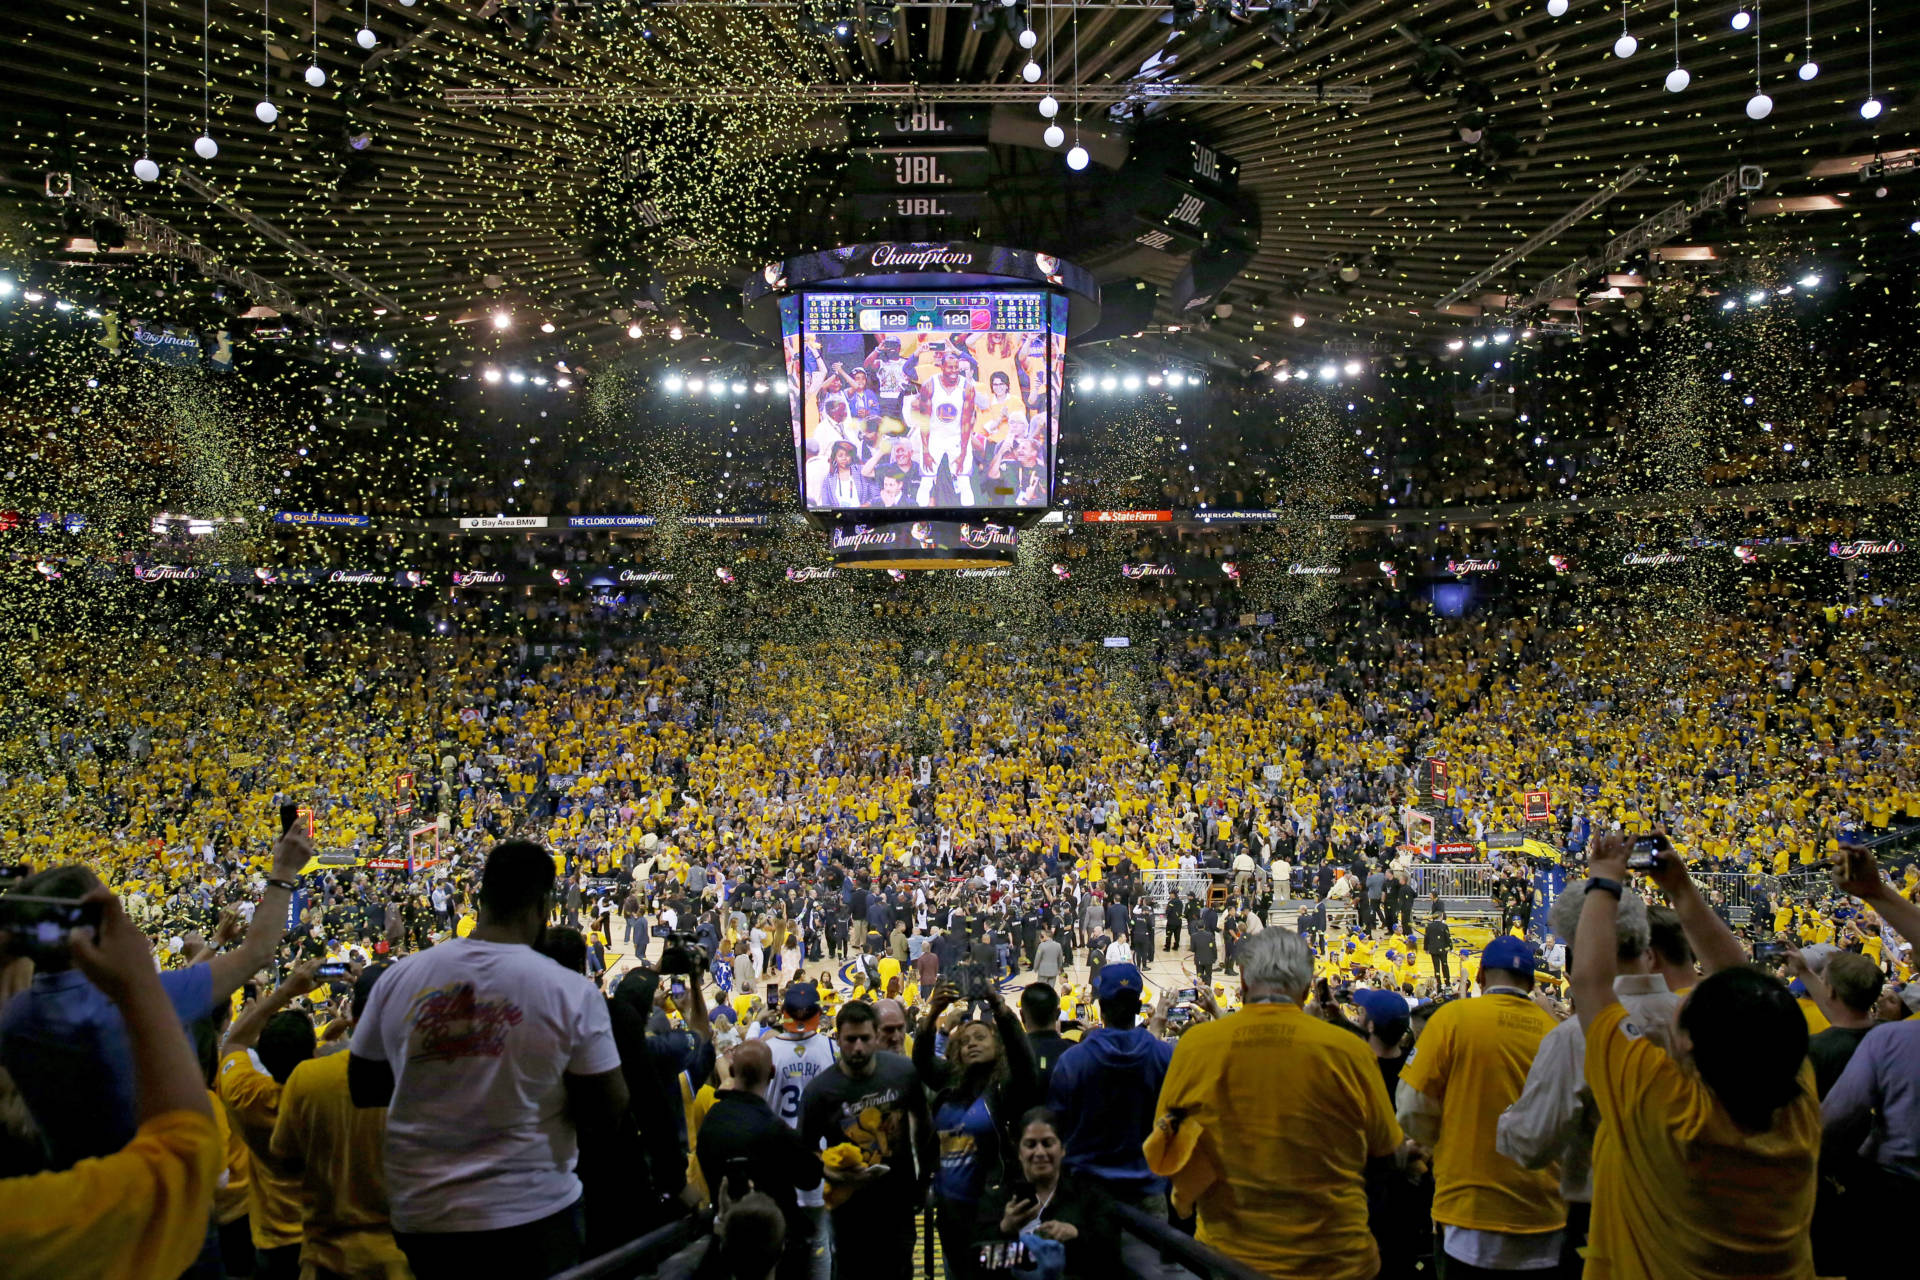 Fans cheer inside Oracle Arena as the Golden State Warriors celebrate their second NBA title in three seasons. Ezra Shaw/Getty Images